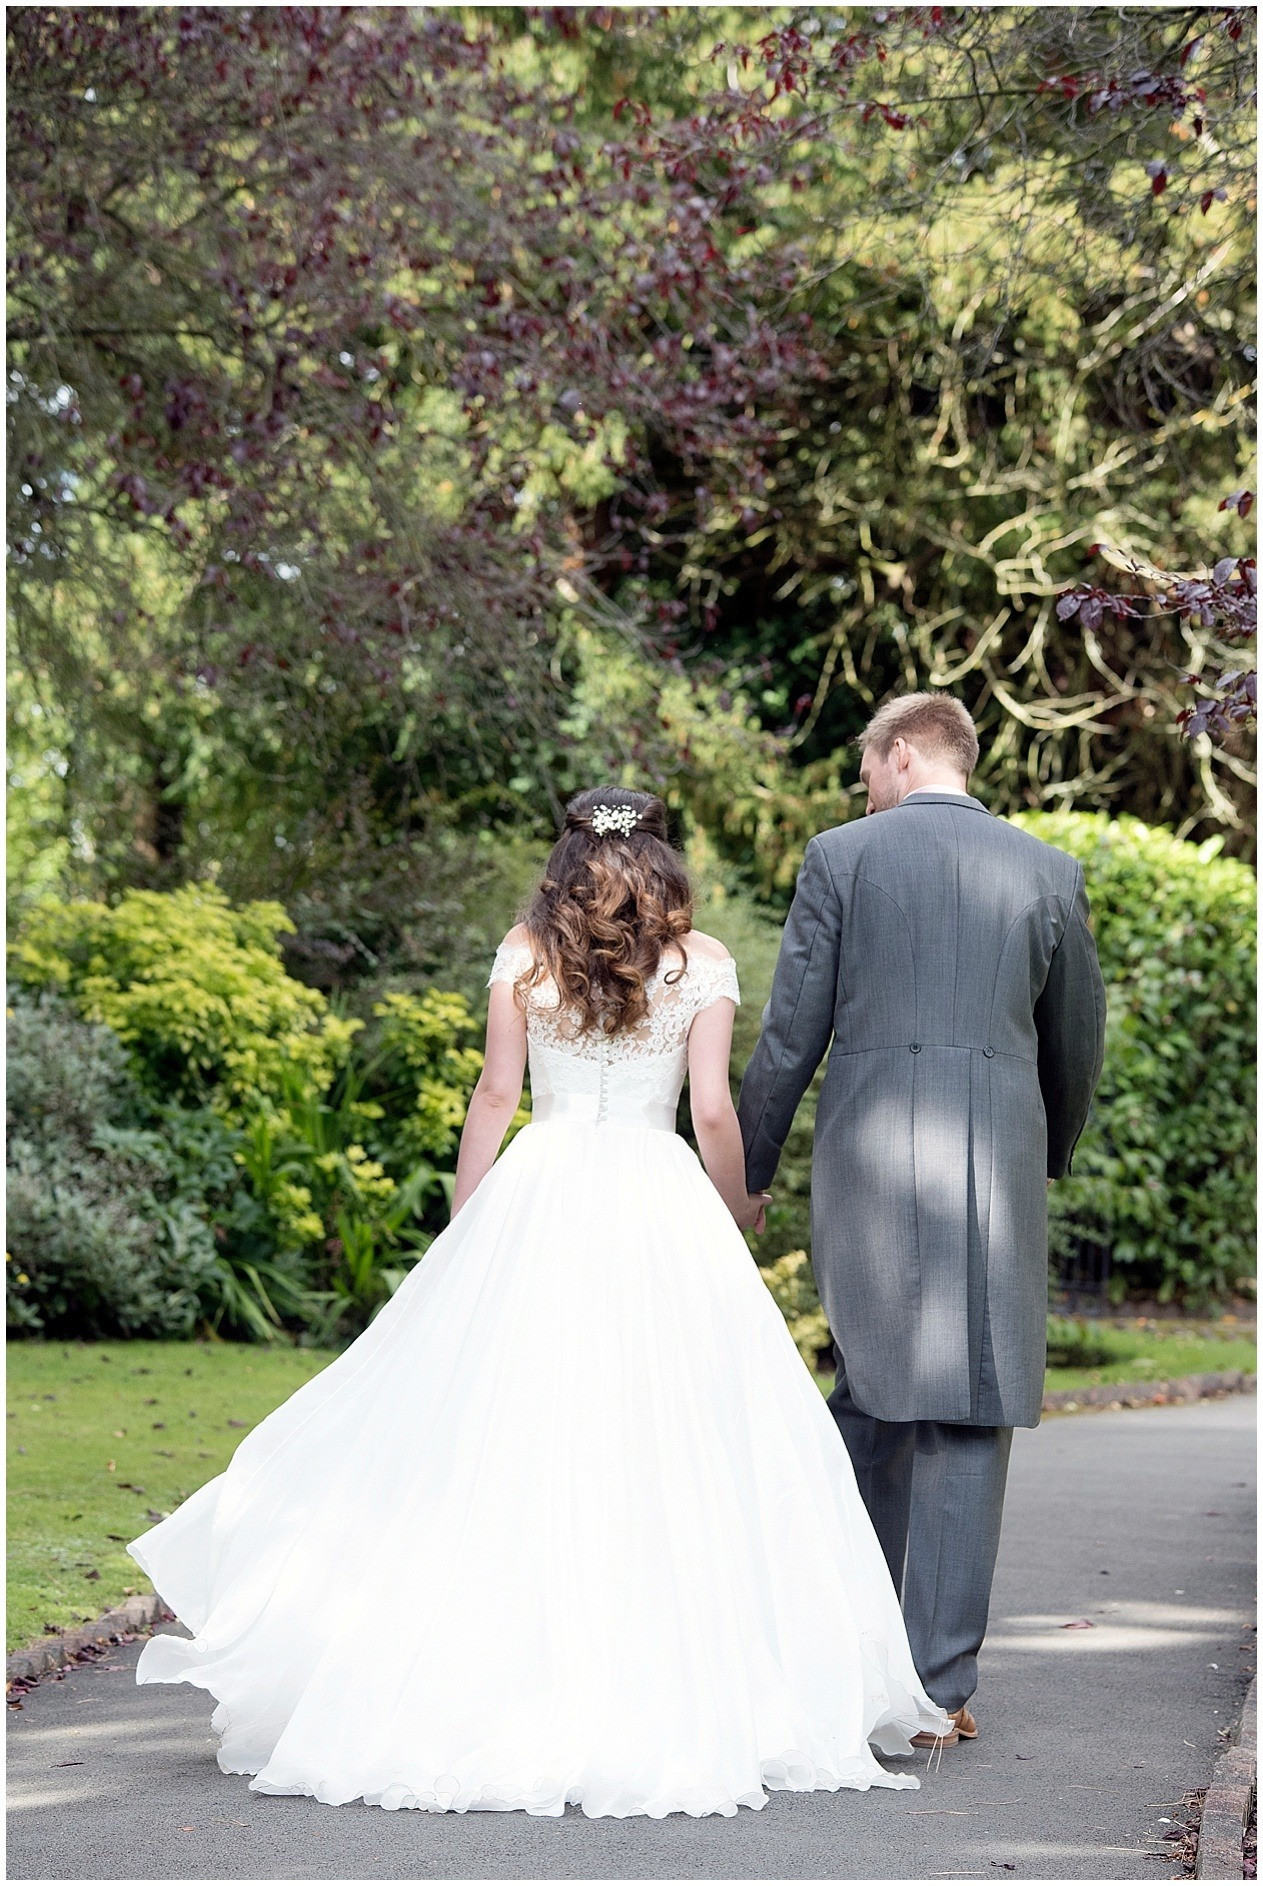 Bride and groom stroll hand in hand on their wedding day in Harrogate. Yorkshire wedding photographer